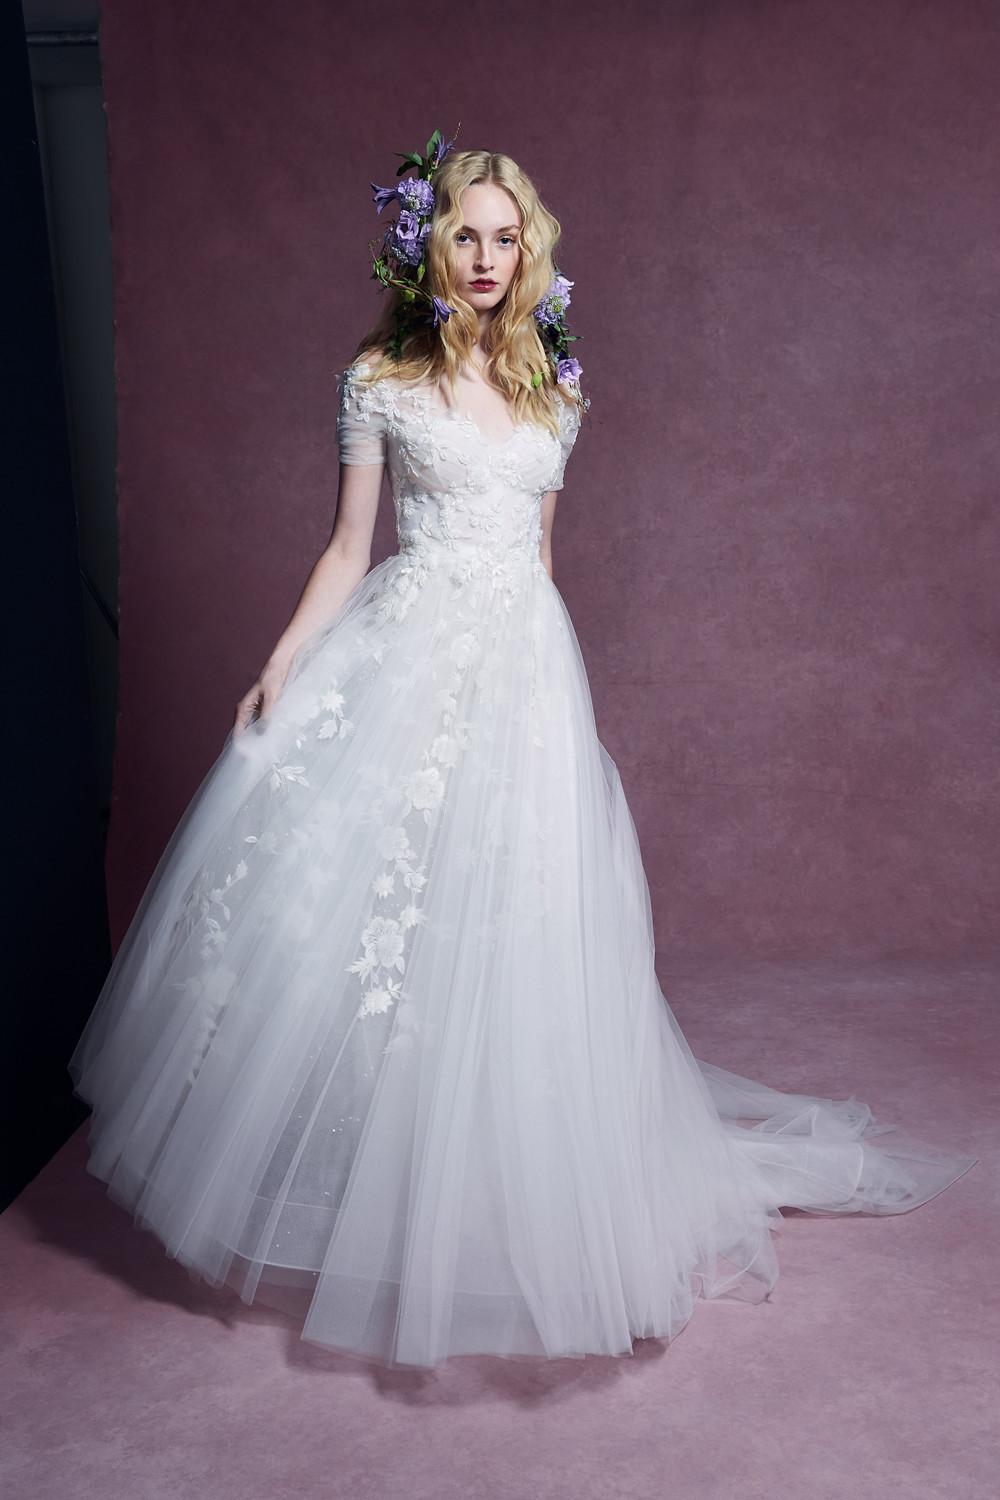 A Marchesa 2020 tulle ball gown wedding dress with cap sleeves, sweetheart neckline and flowers